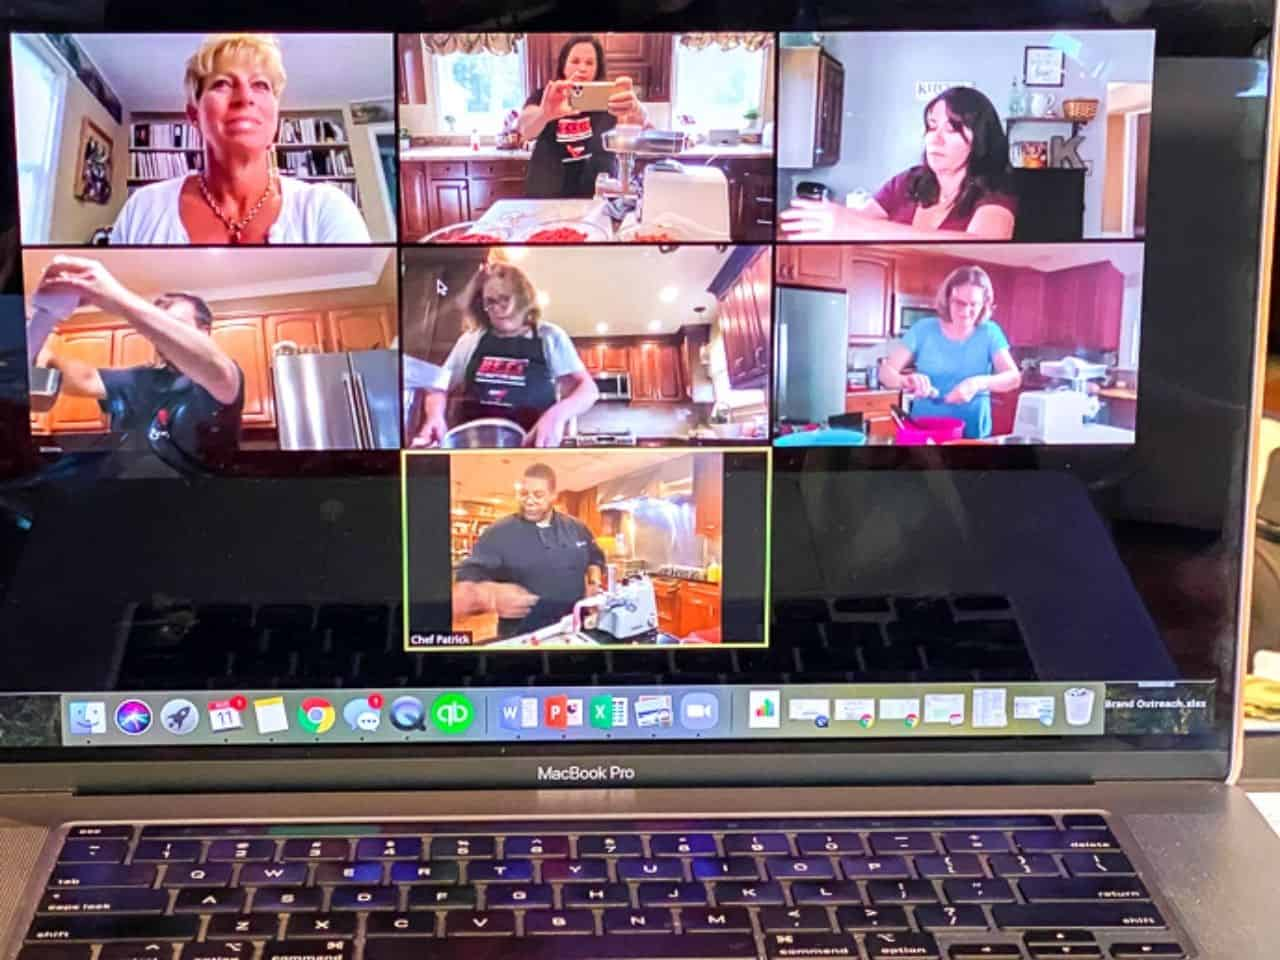 Video chat of learning how to make beef sausage